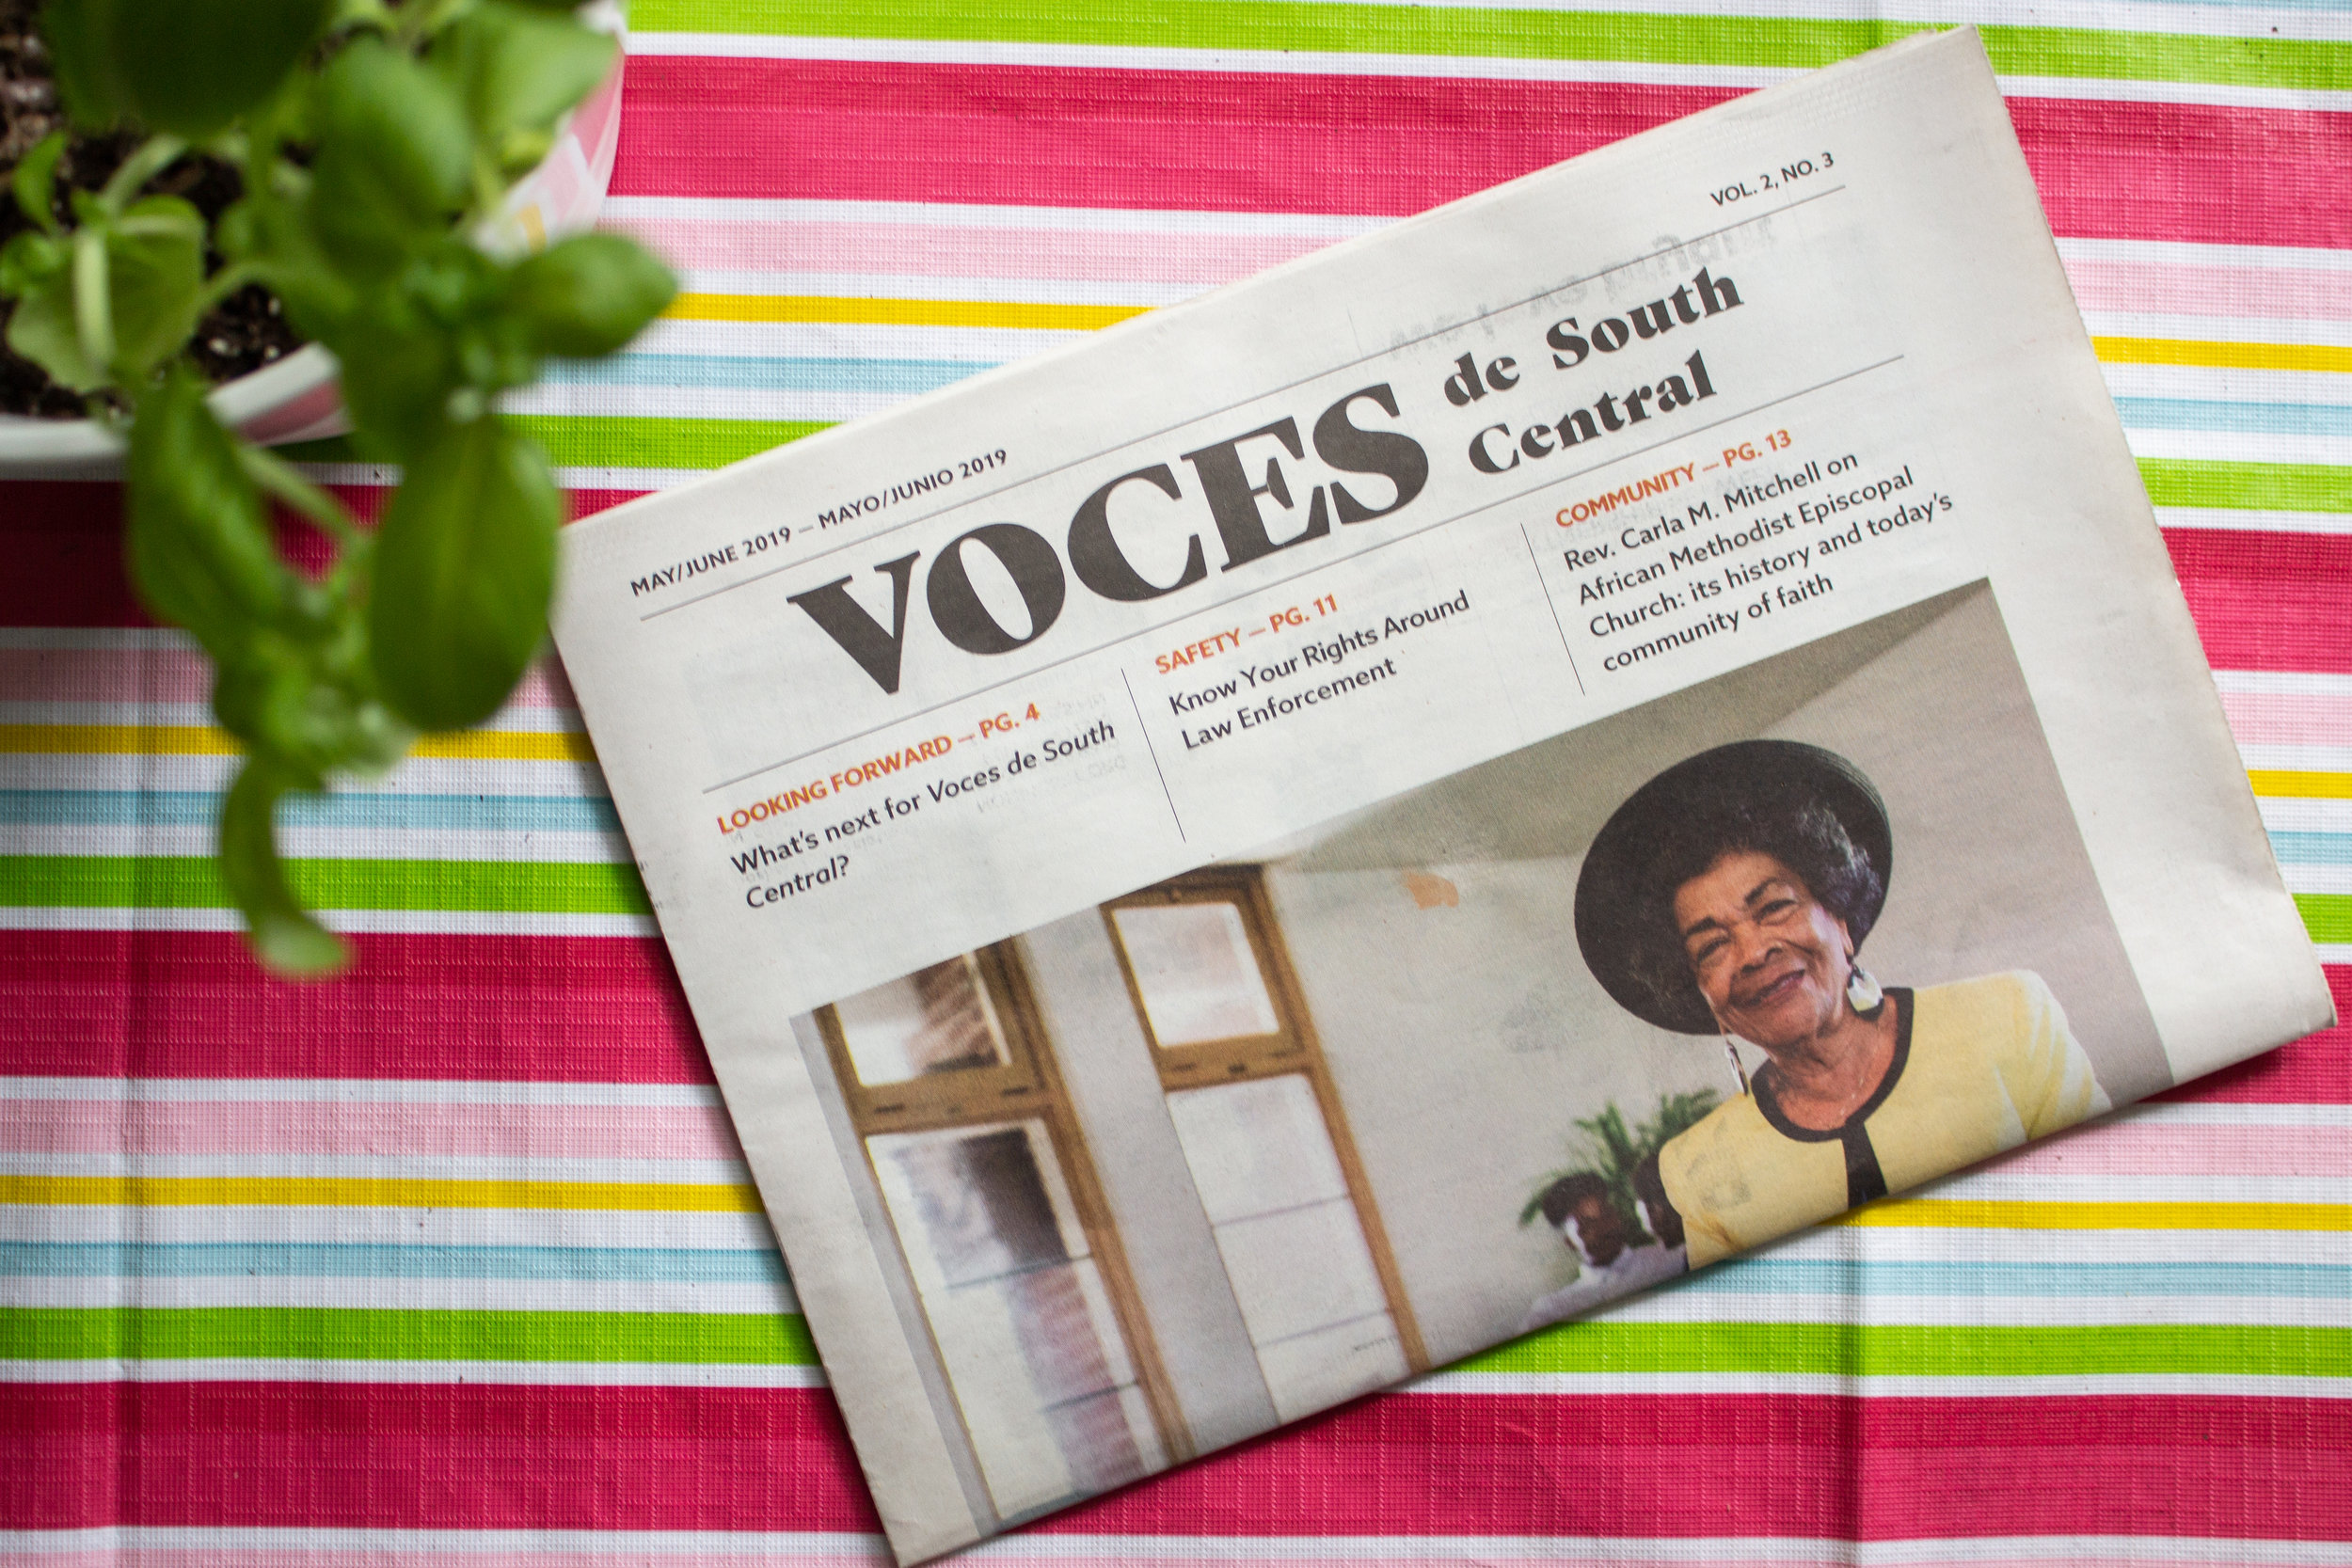 voces_cover-2.jpg